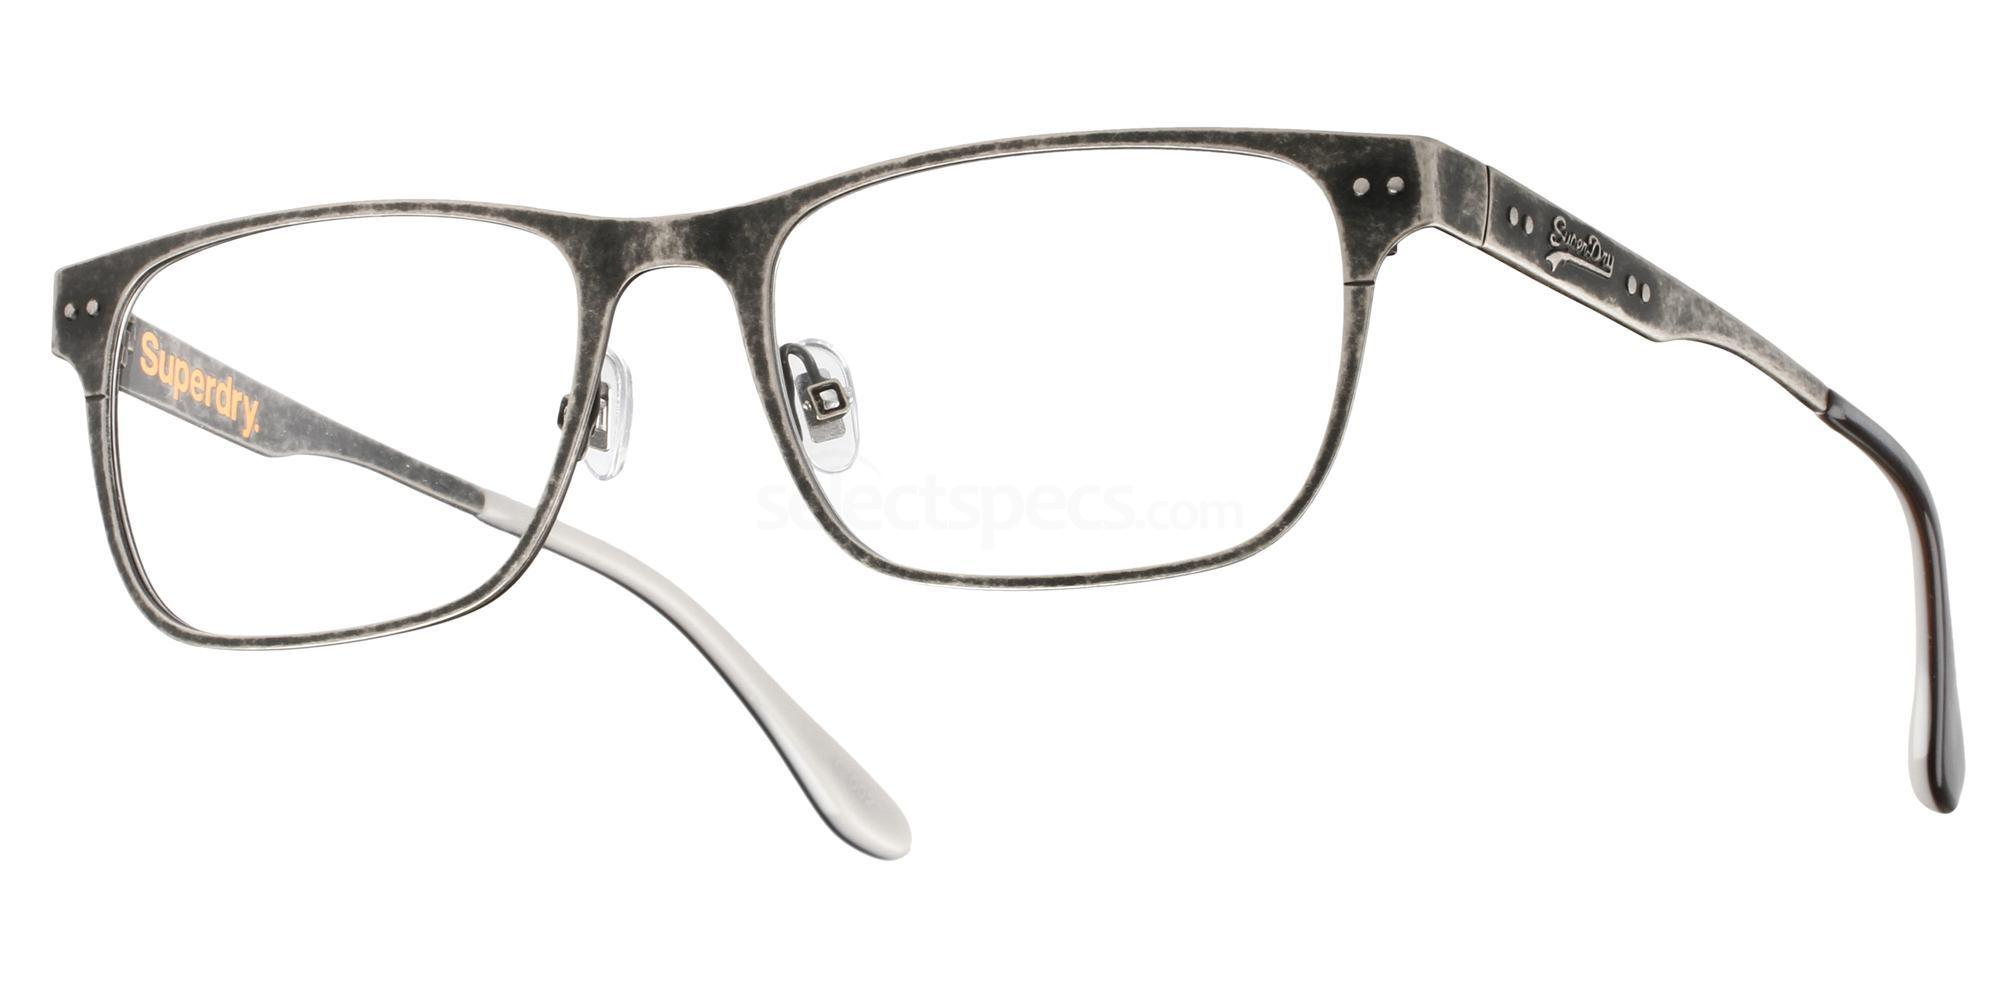 002 SDO-BUSTER Glasses, Superdry